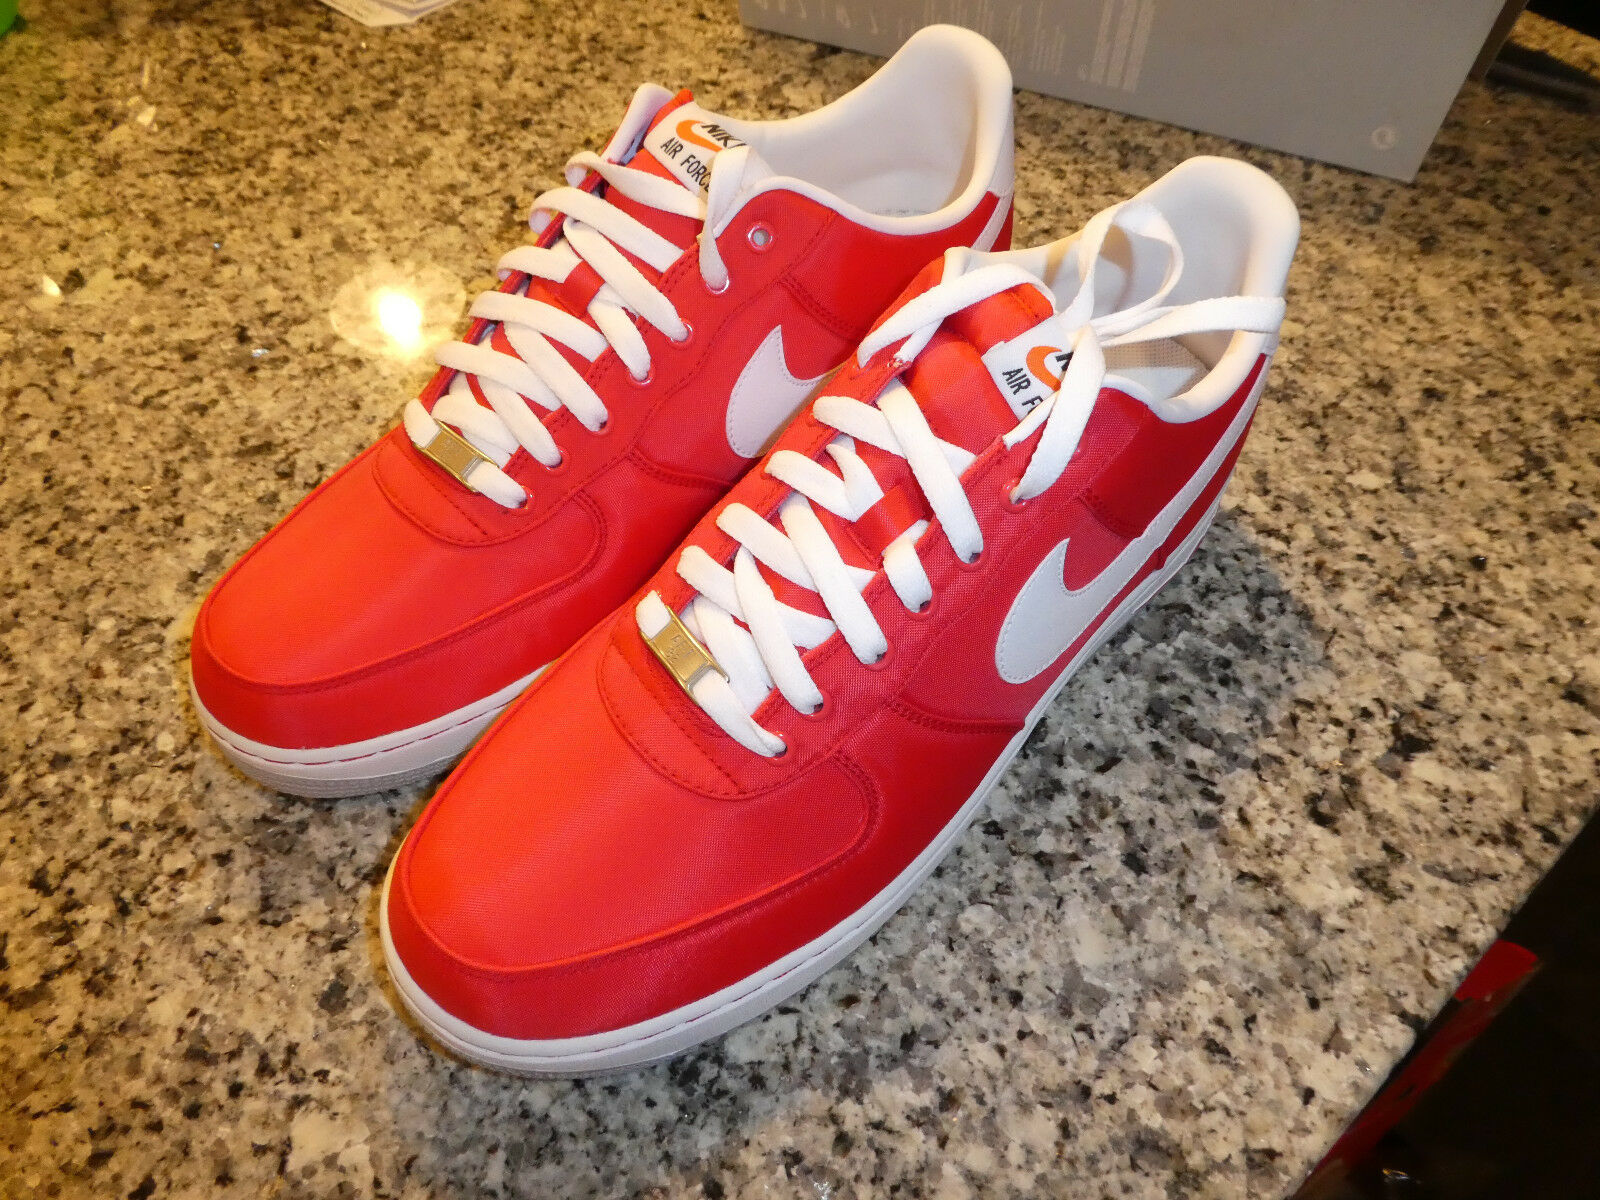 Nike Air Force 1 mens shoes new sneakers 488298 610 red